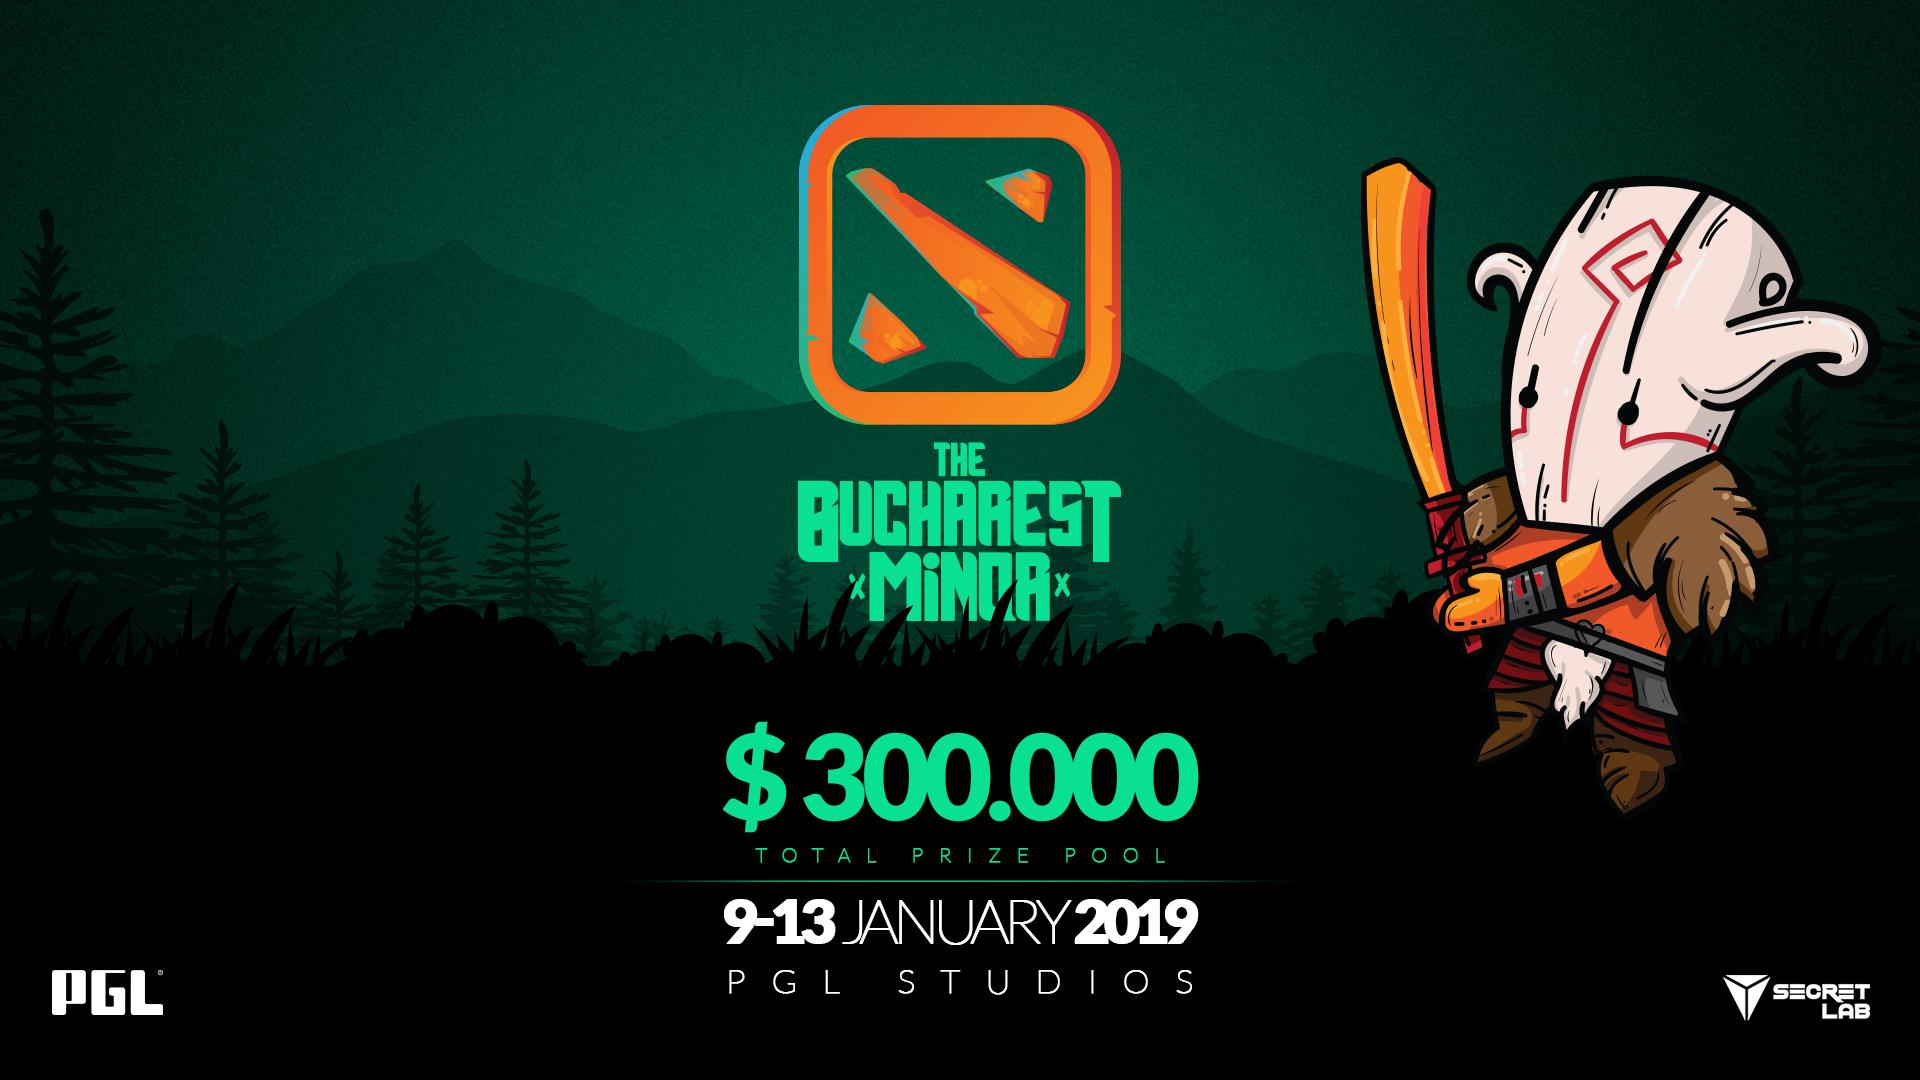 Dota 2 Bucharest Minor event.